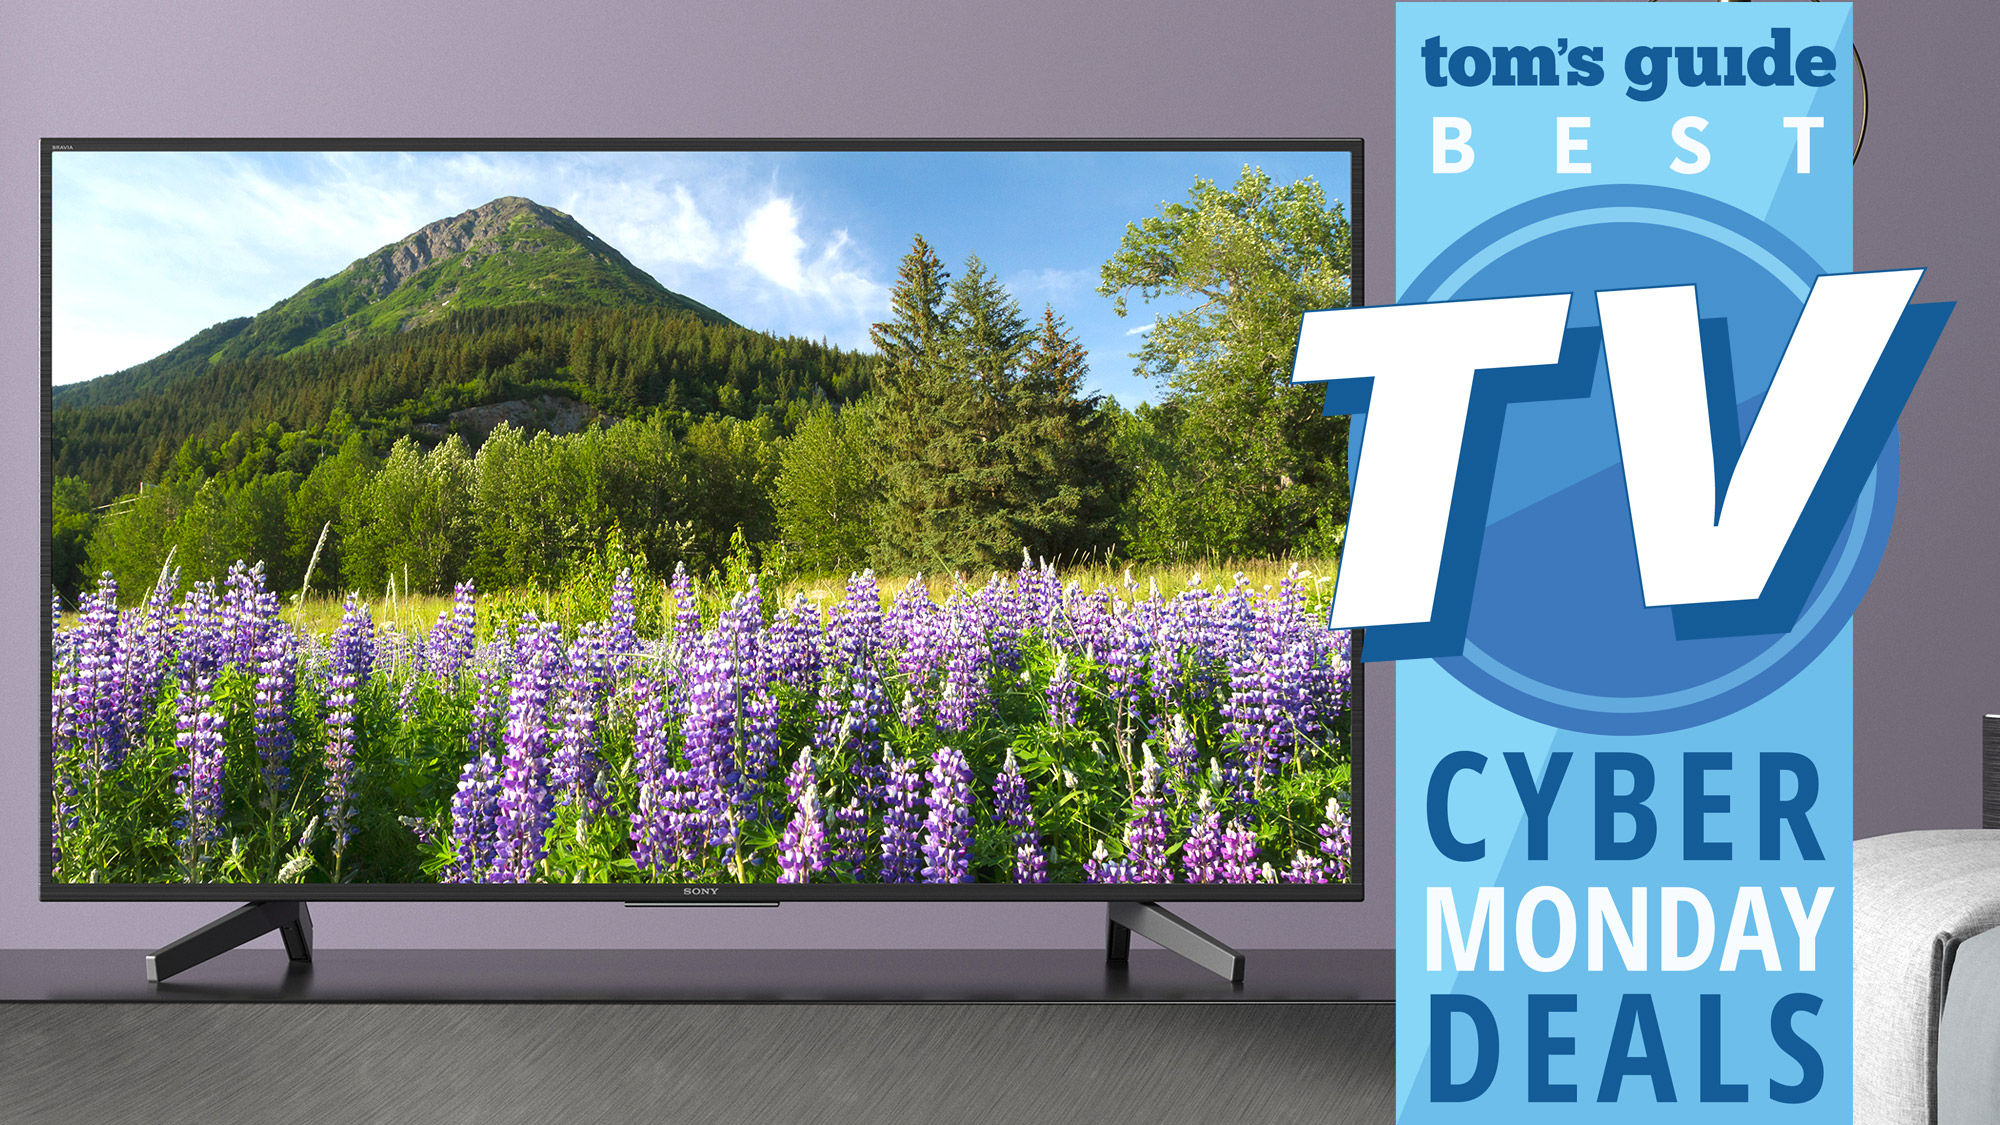 Best Cyber Monday Tv Deals 2019 The Biggest Sales Of The Year Tom S Guide